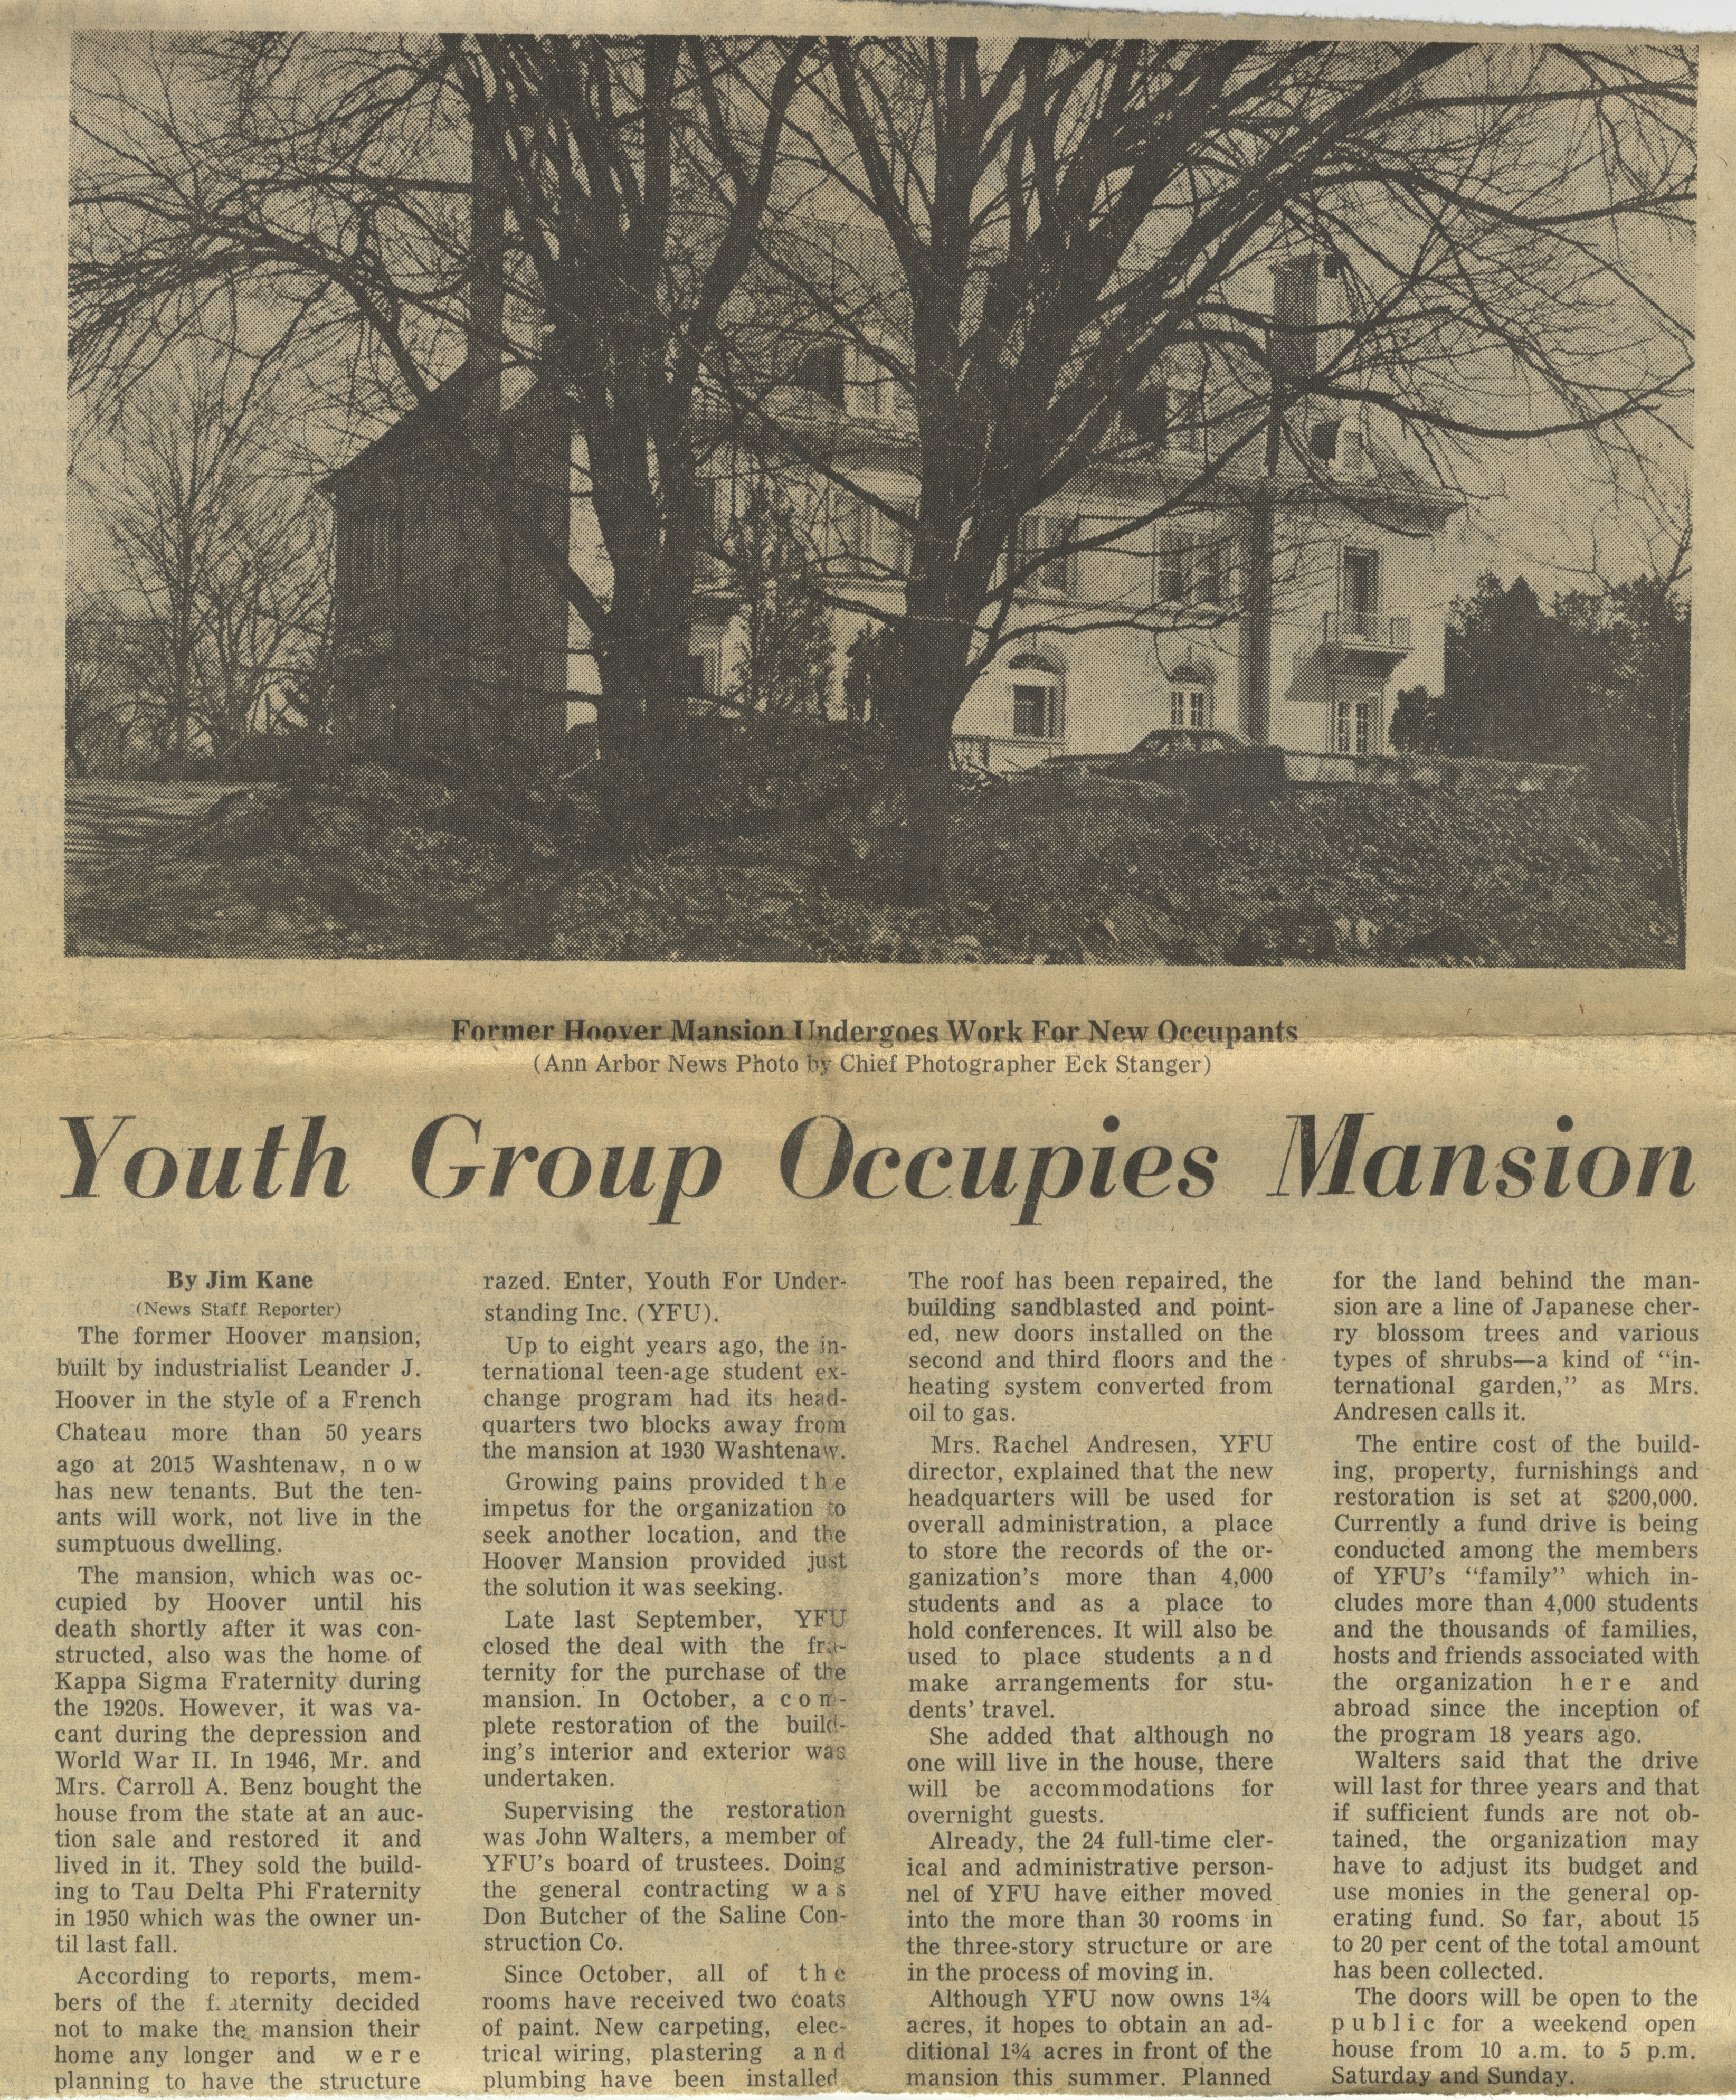 Youth Group Occupies Mansion image